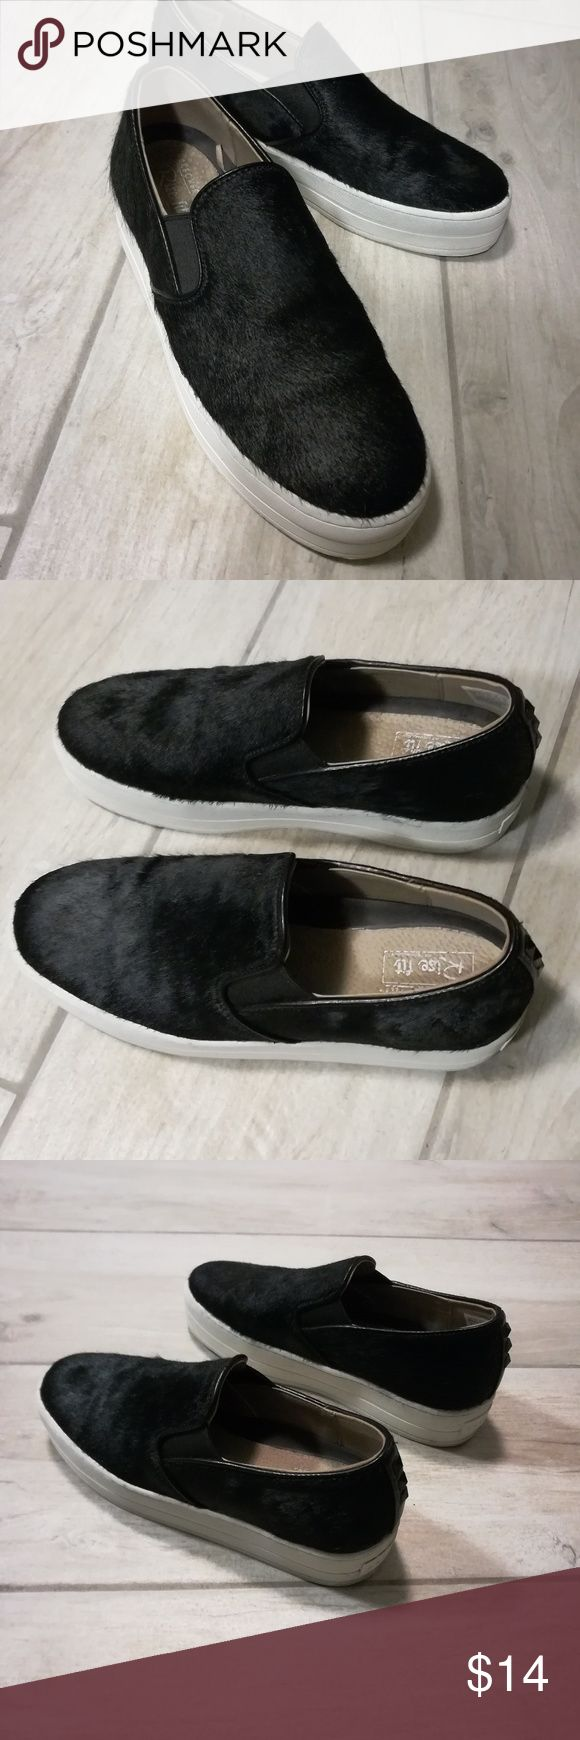 """💞 Skechers - slip on loafers For your consideration is super cool high-rise loafers by Skechers.   Casual & super comfortable yet trendy and fashionable 👟🛍️✨  Great condition, please ask if any questions.  Features slip on style with 2"""" platform and edgy studs.  Elastic part on each side for easy fit.  True to size.  100% leather with cow hair on the upper part.  Smoke free, fast shipping. Skechers Shoes"""